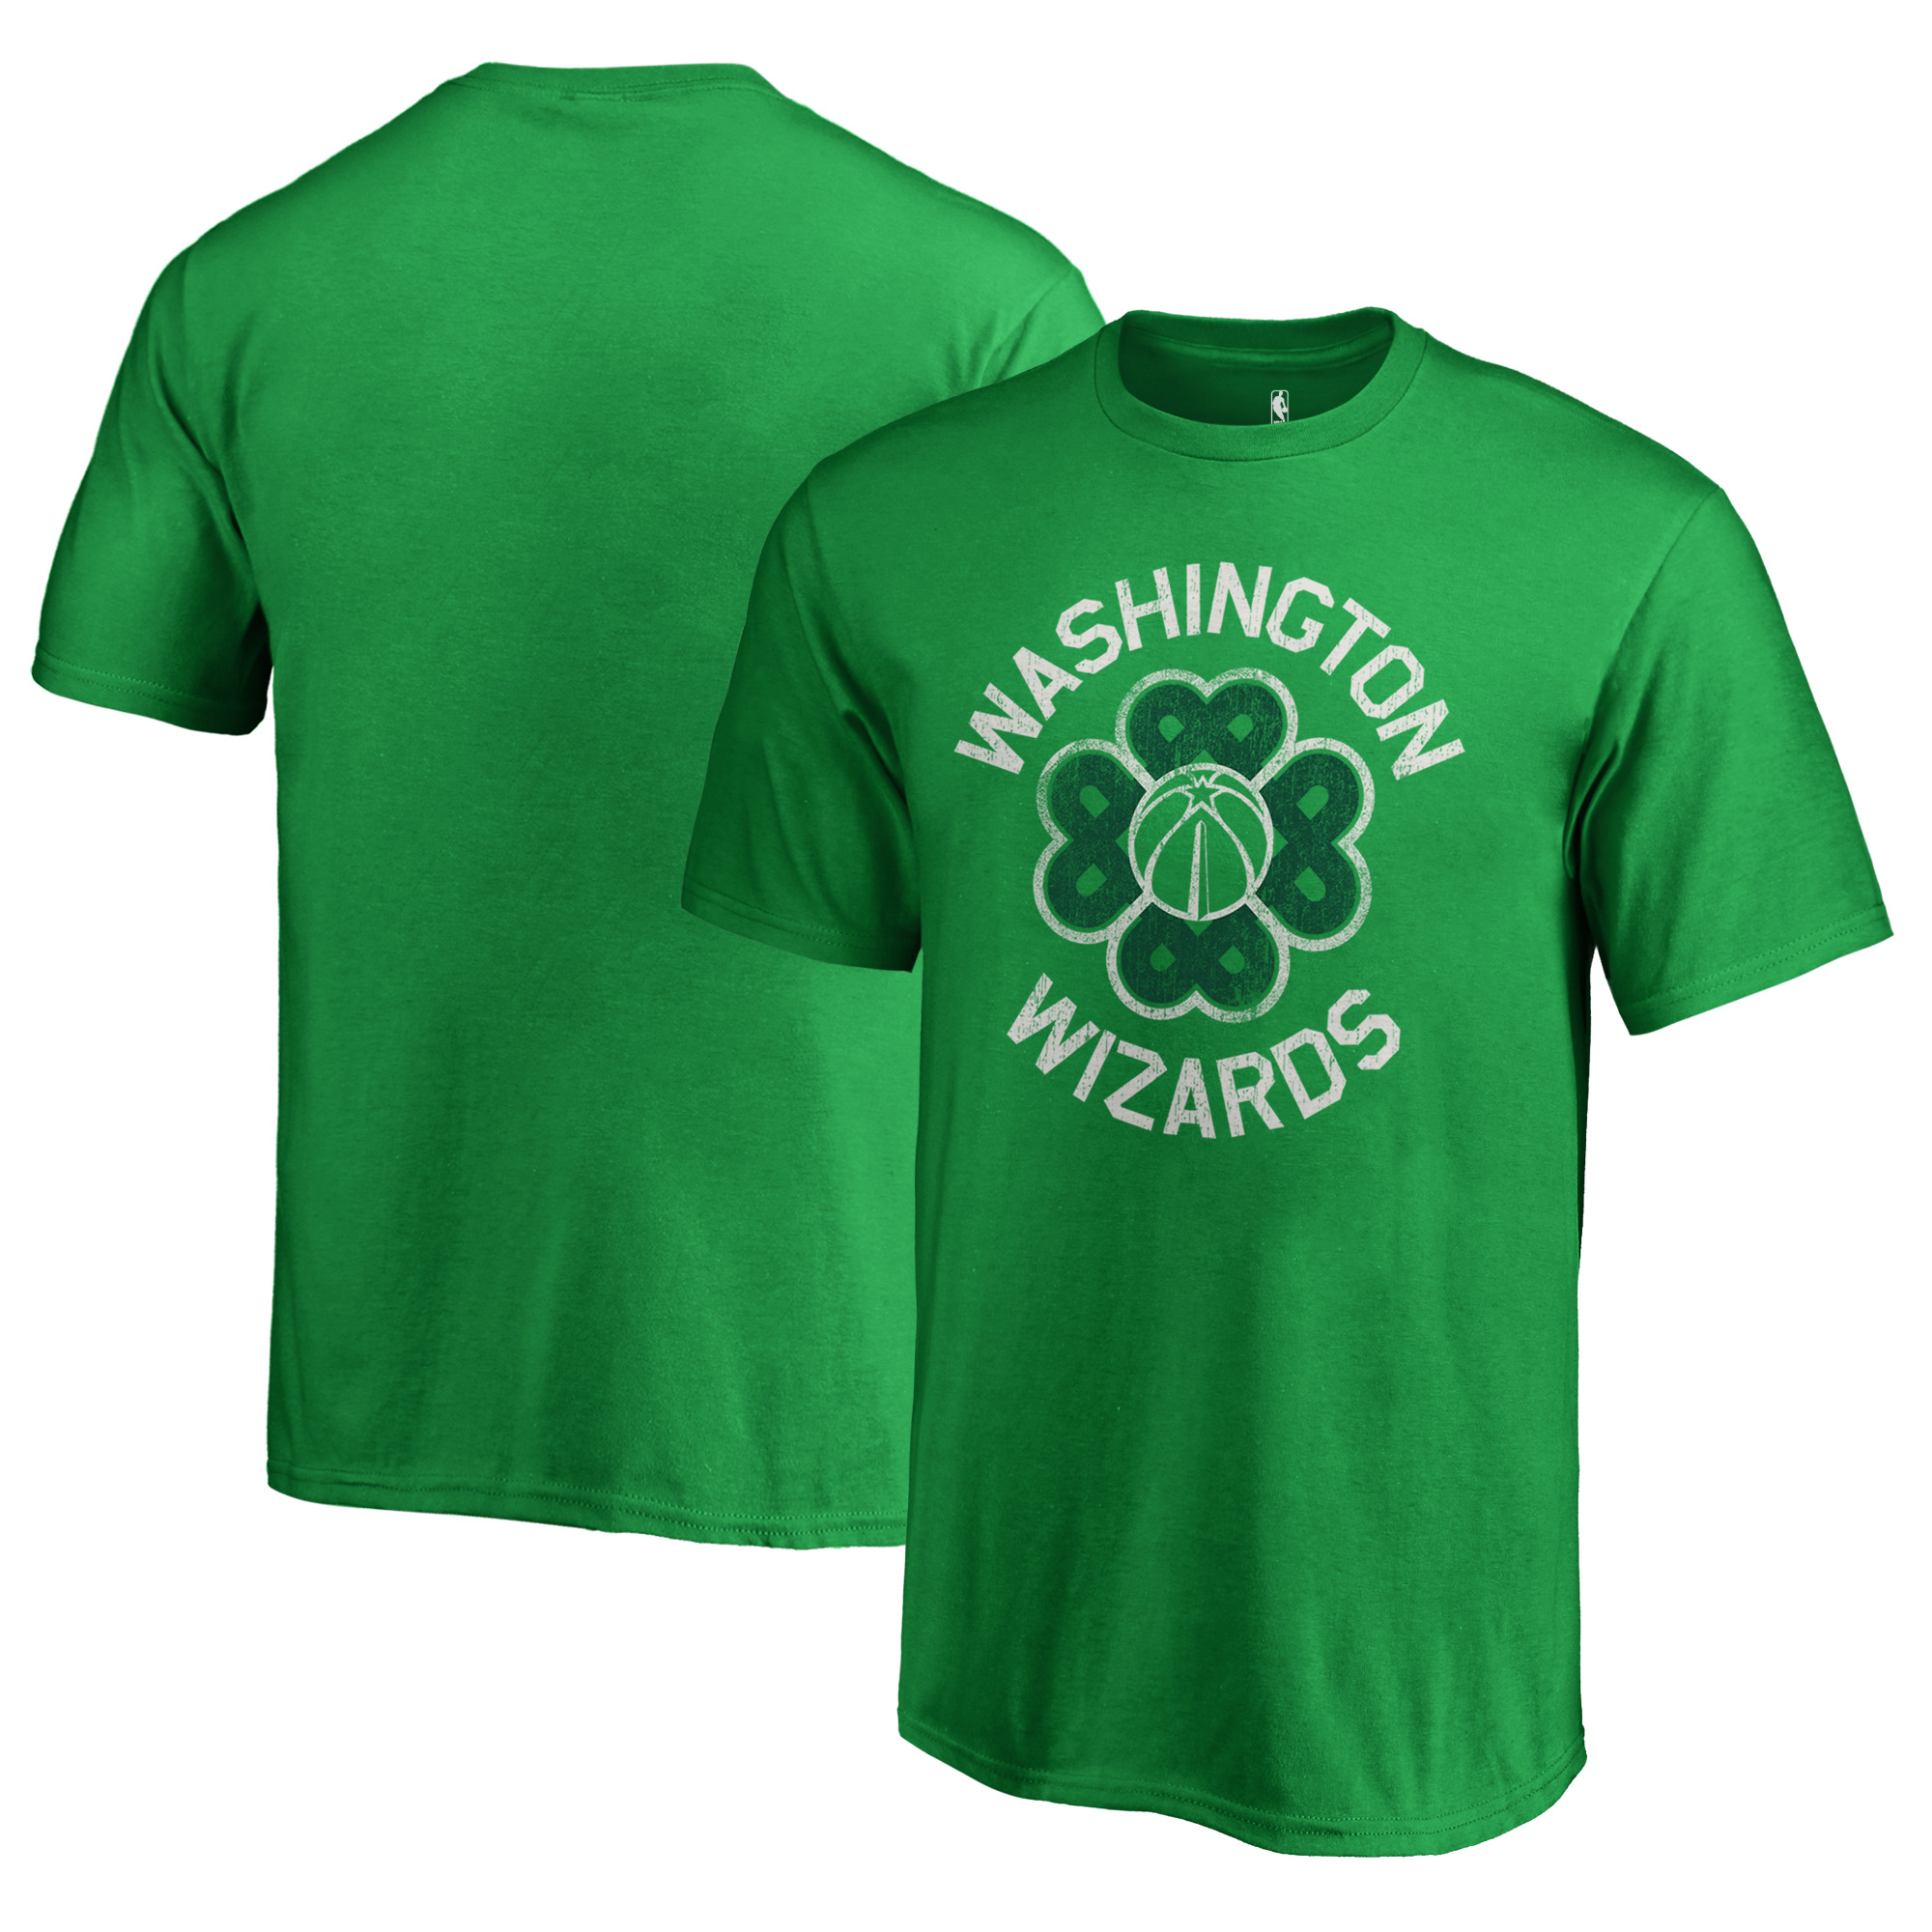 Washington Wizards Fanatics Branded Youth St. Patrick's Day Luck Tradition T-Shirt - Kelly Green